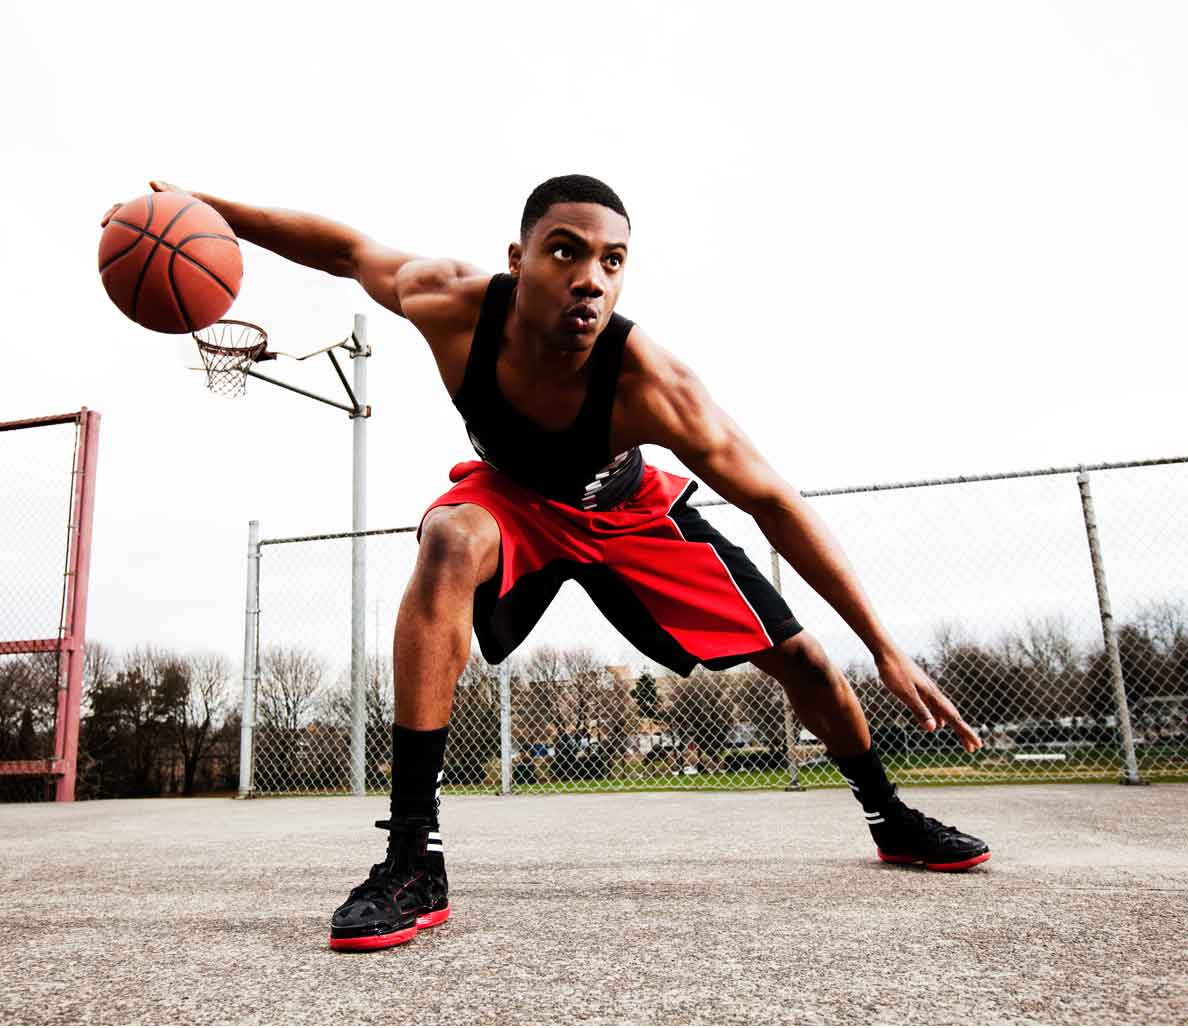 Spring Sports Guide: The Basketball Performance Workout